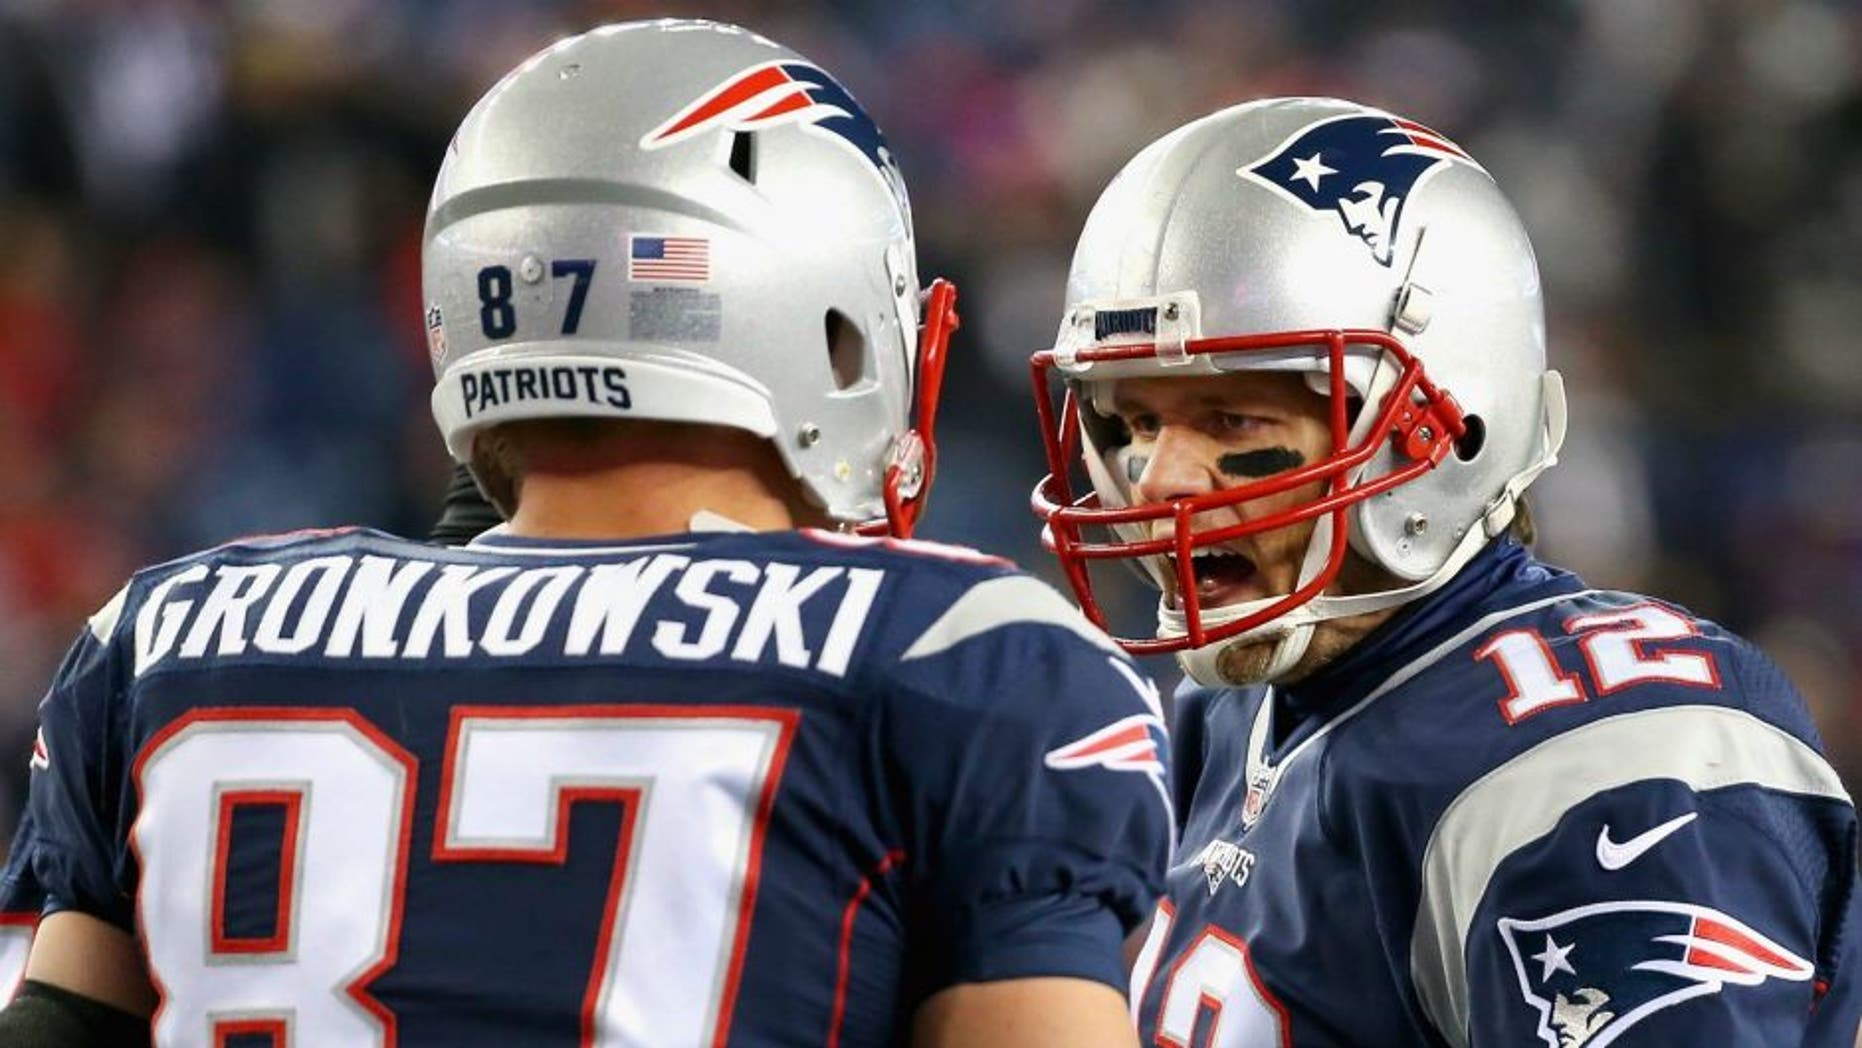 > of the New England Patriots of the Buffalo Bills at Gillette Stadium on November 23, 2015 in Foxboro, Massachusetts.,FOXBORO, MA - NOVEMBER 23: Tom Brady #12 of the New England Patriots reacts with Rob Gronkowski #87 before a game against the Buffalo Bills at Gillette Stadium on November 23, 2015 in Foxboro, Massachusetts. (Photo by Jim Rogash/Getty Images)